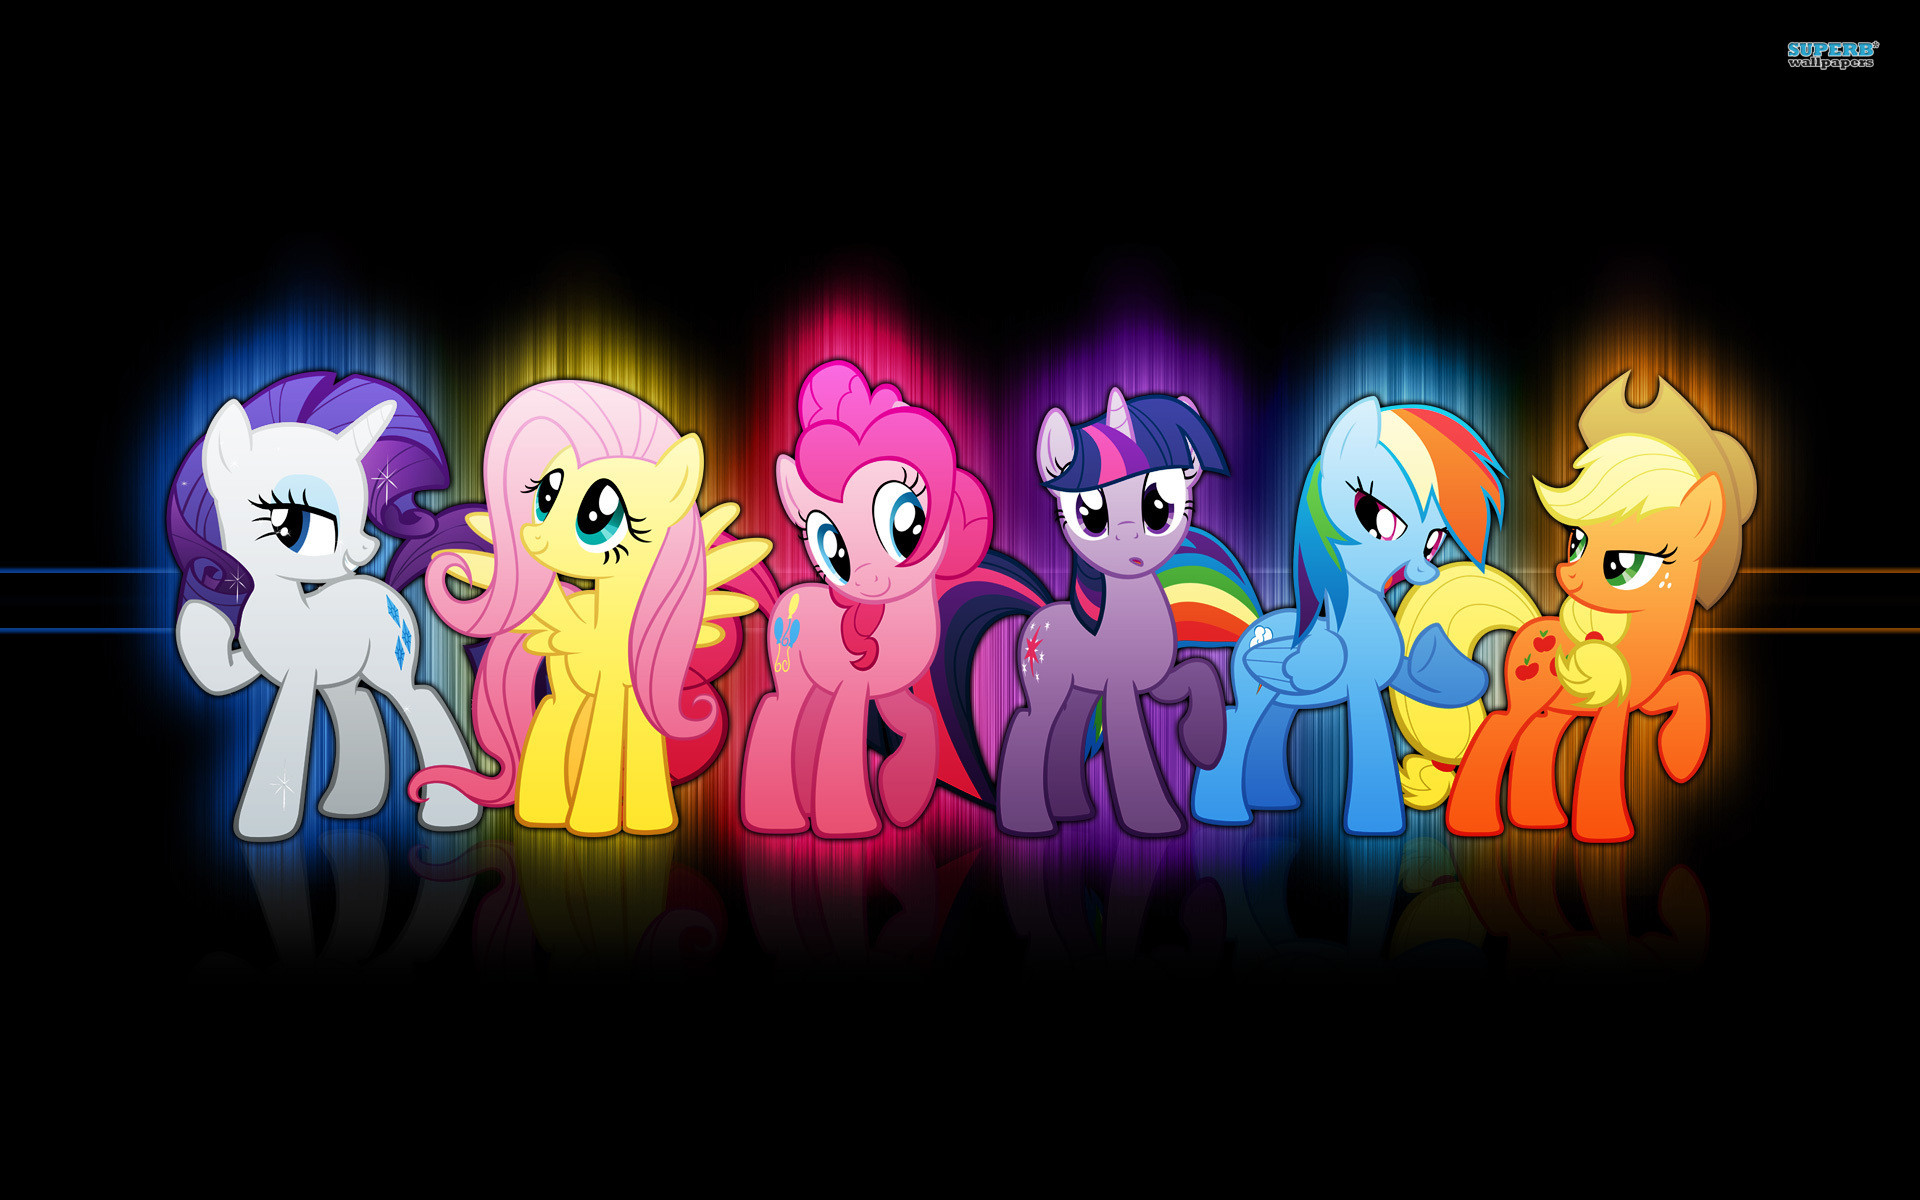 1920x1200 My Little Pony Friendship Is Magic Oc Images MLP Wallpaper HD And Background Photos